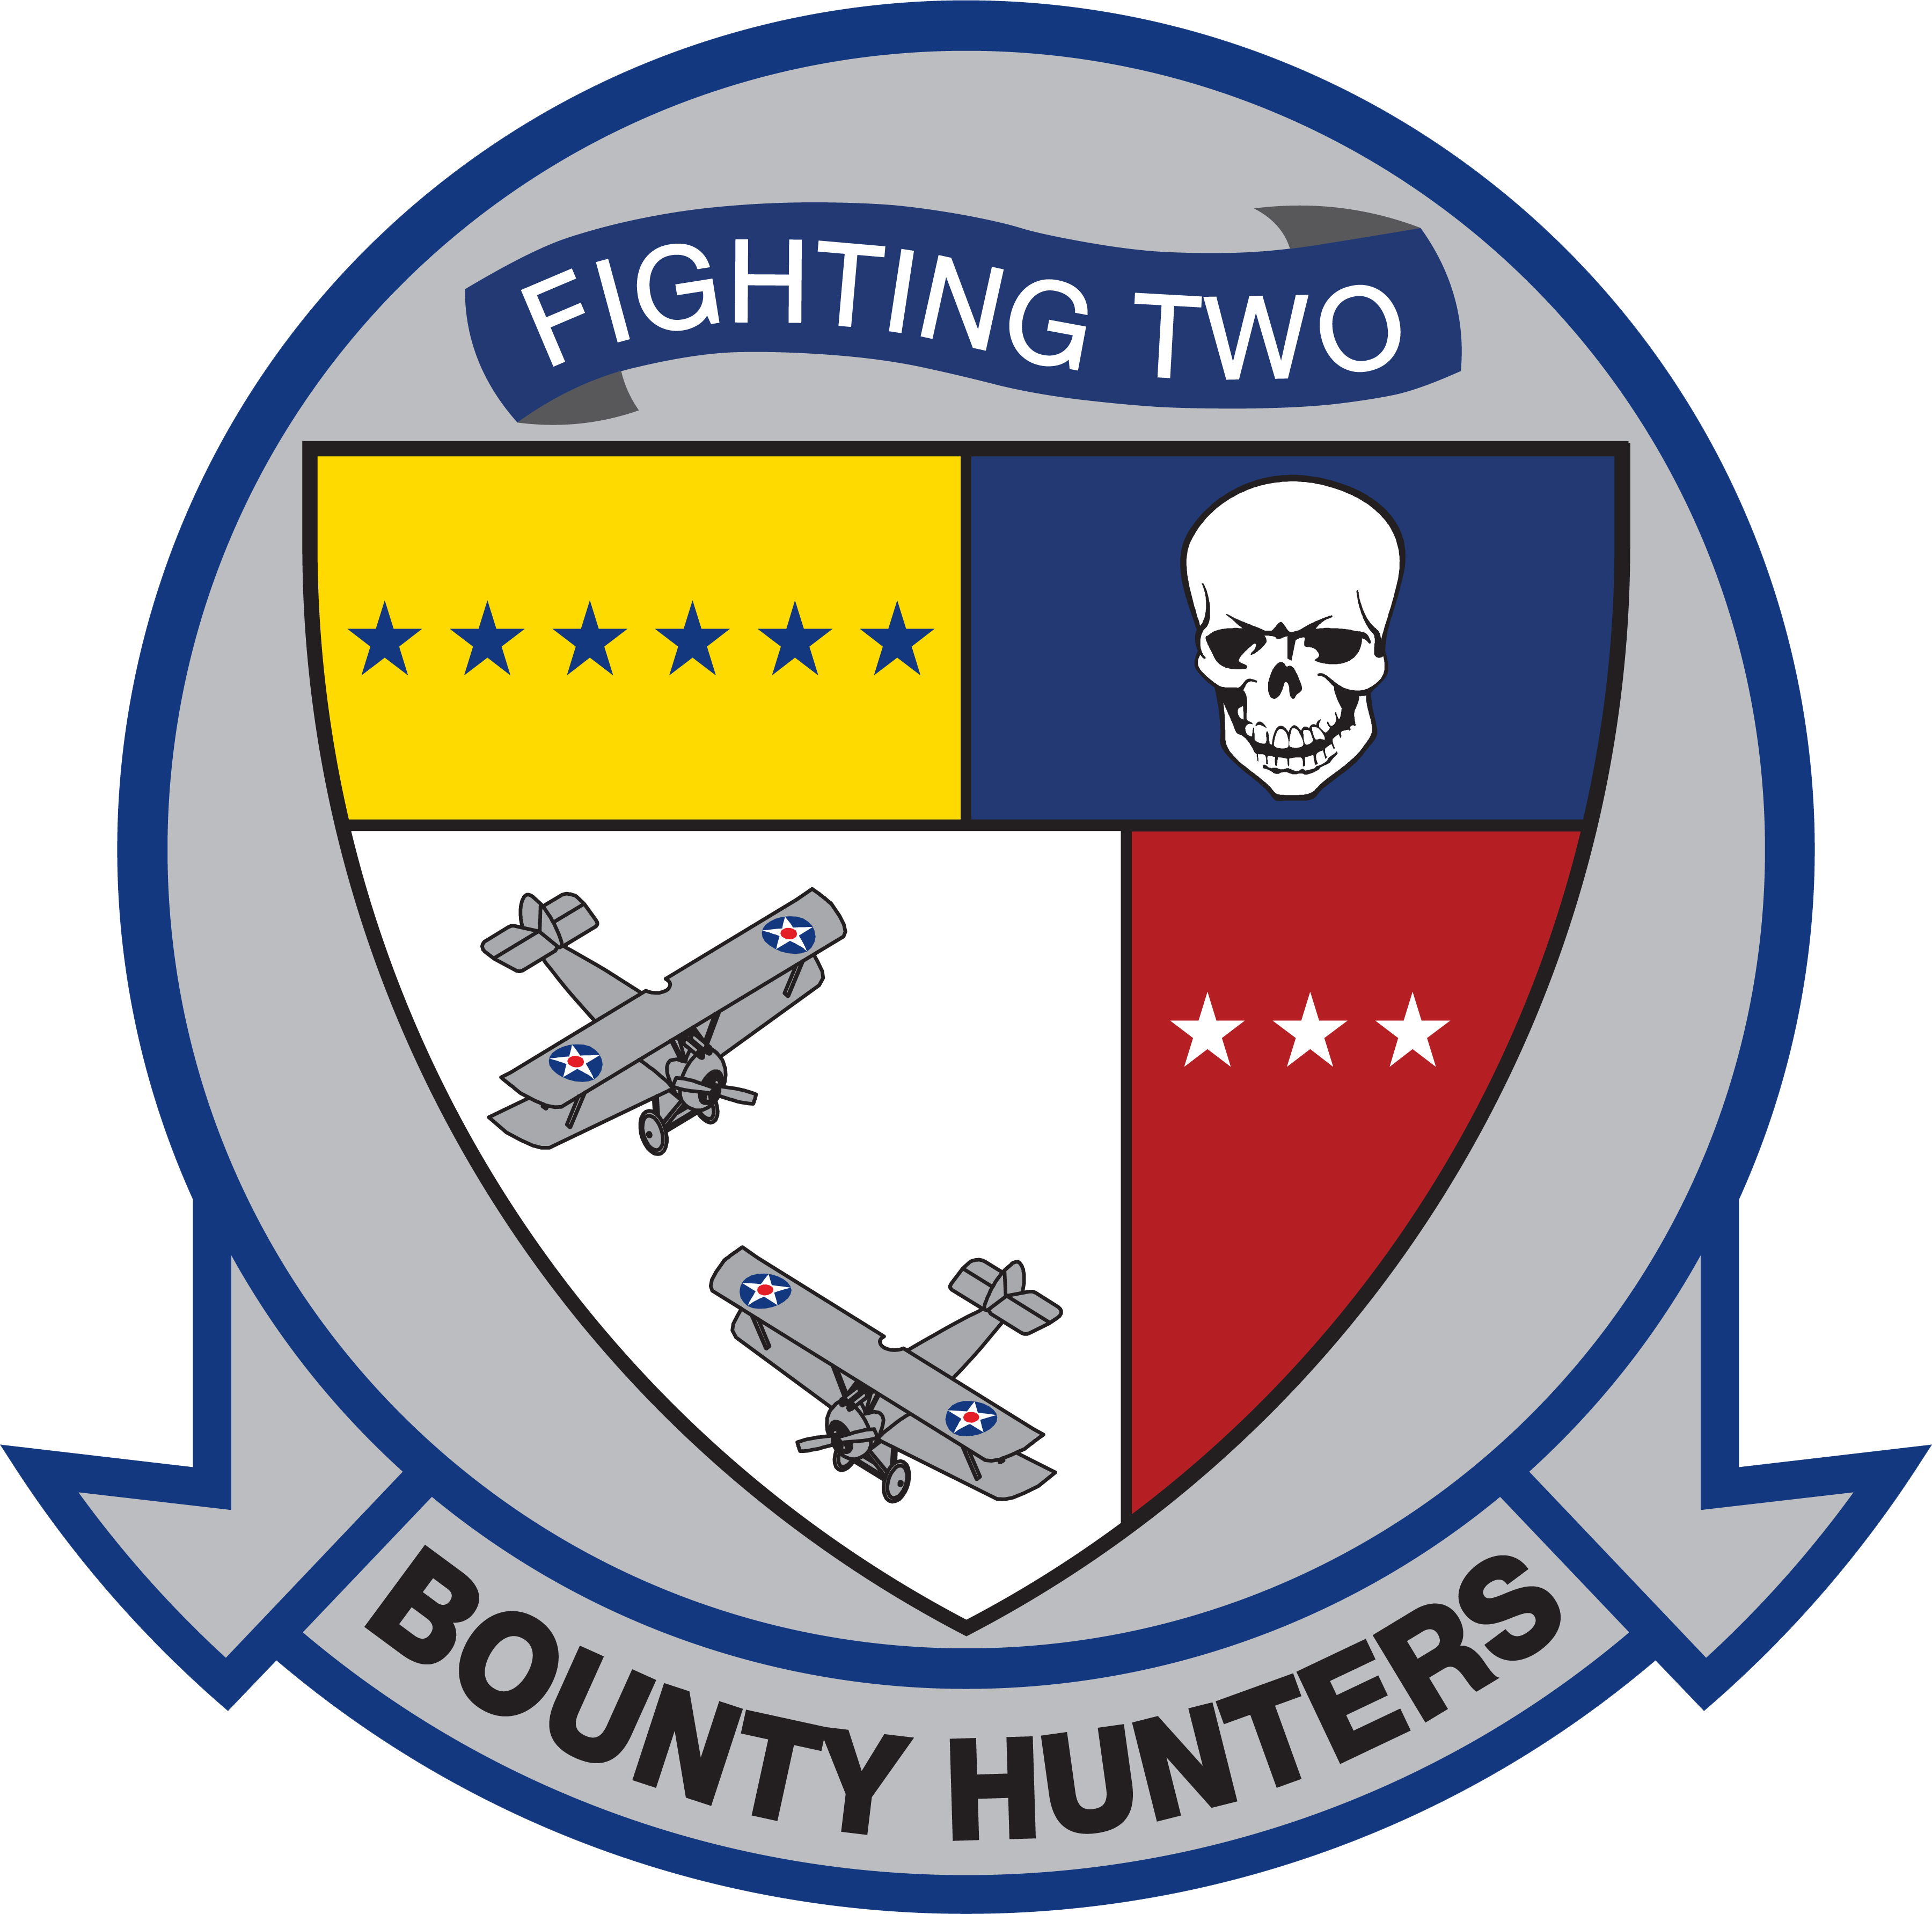 Filefighter squadron 2 us navy insignia 1973g wikimedia filefighter squadron 2 us navy insignia 1973g biocorpaavc